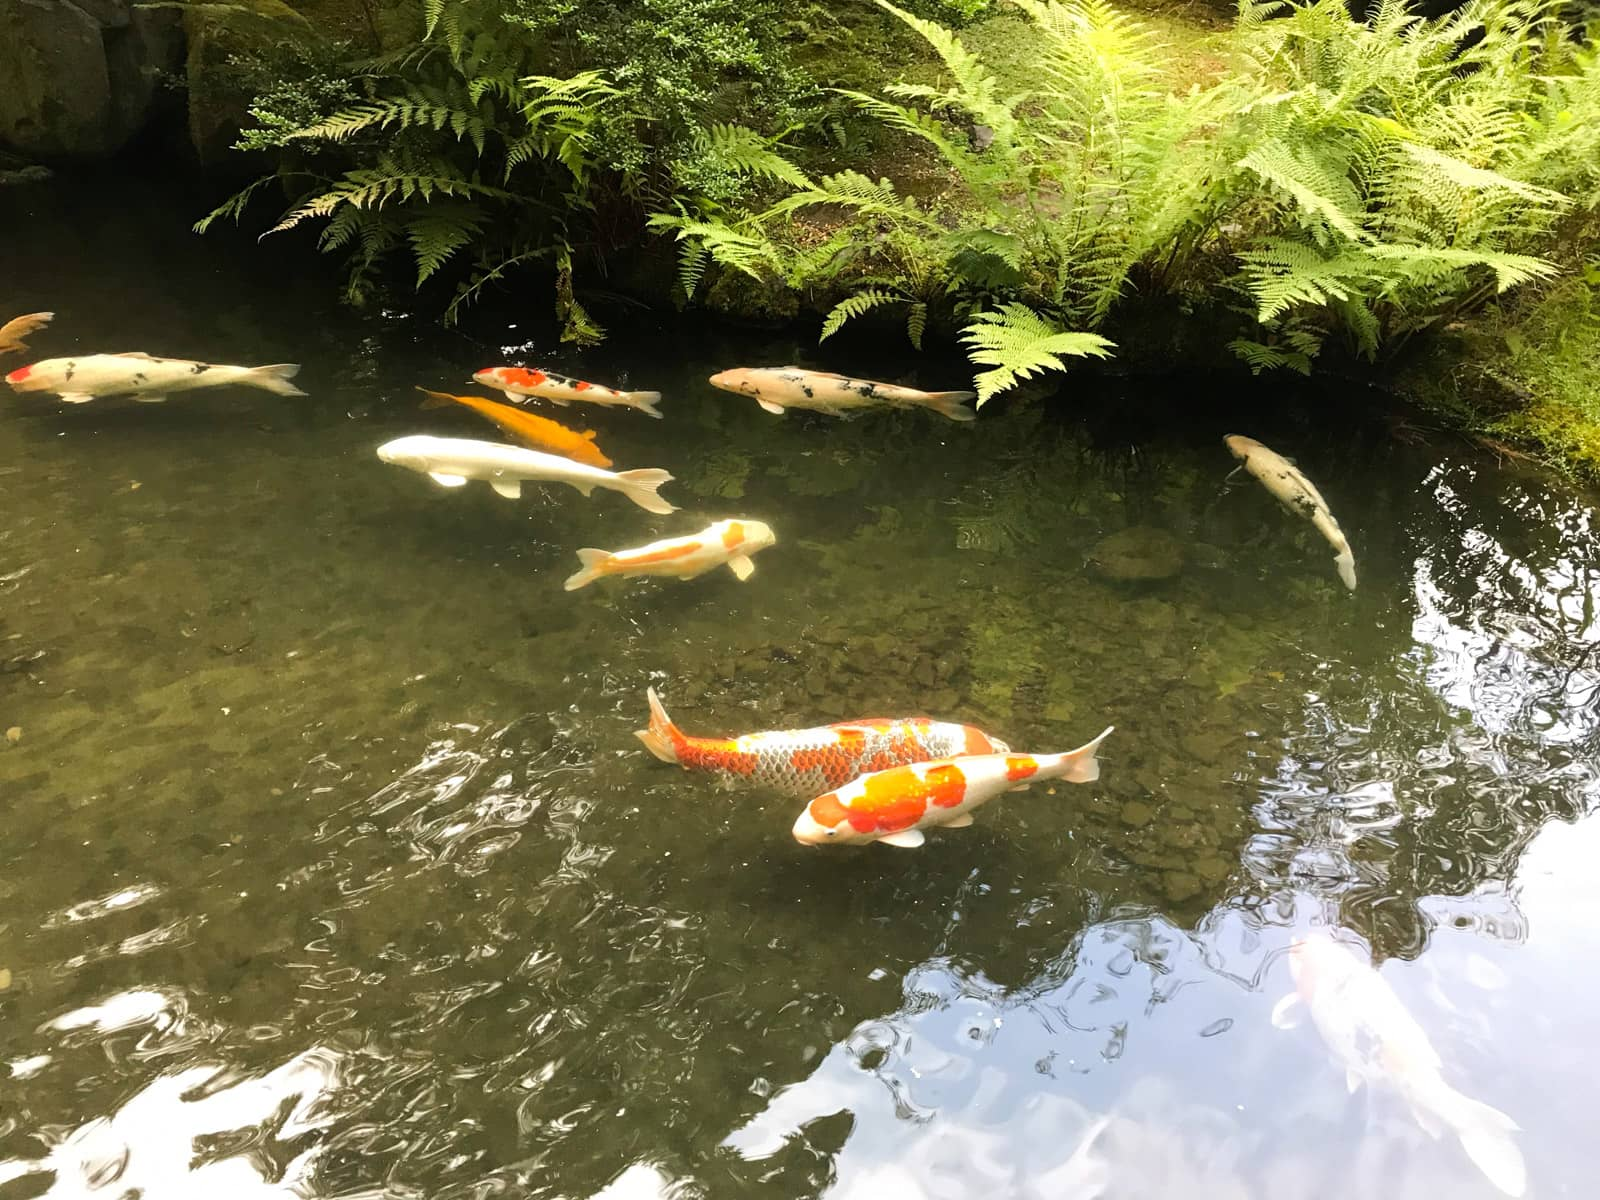 Orange and white koi fish in a pond with dark green-brown water